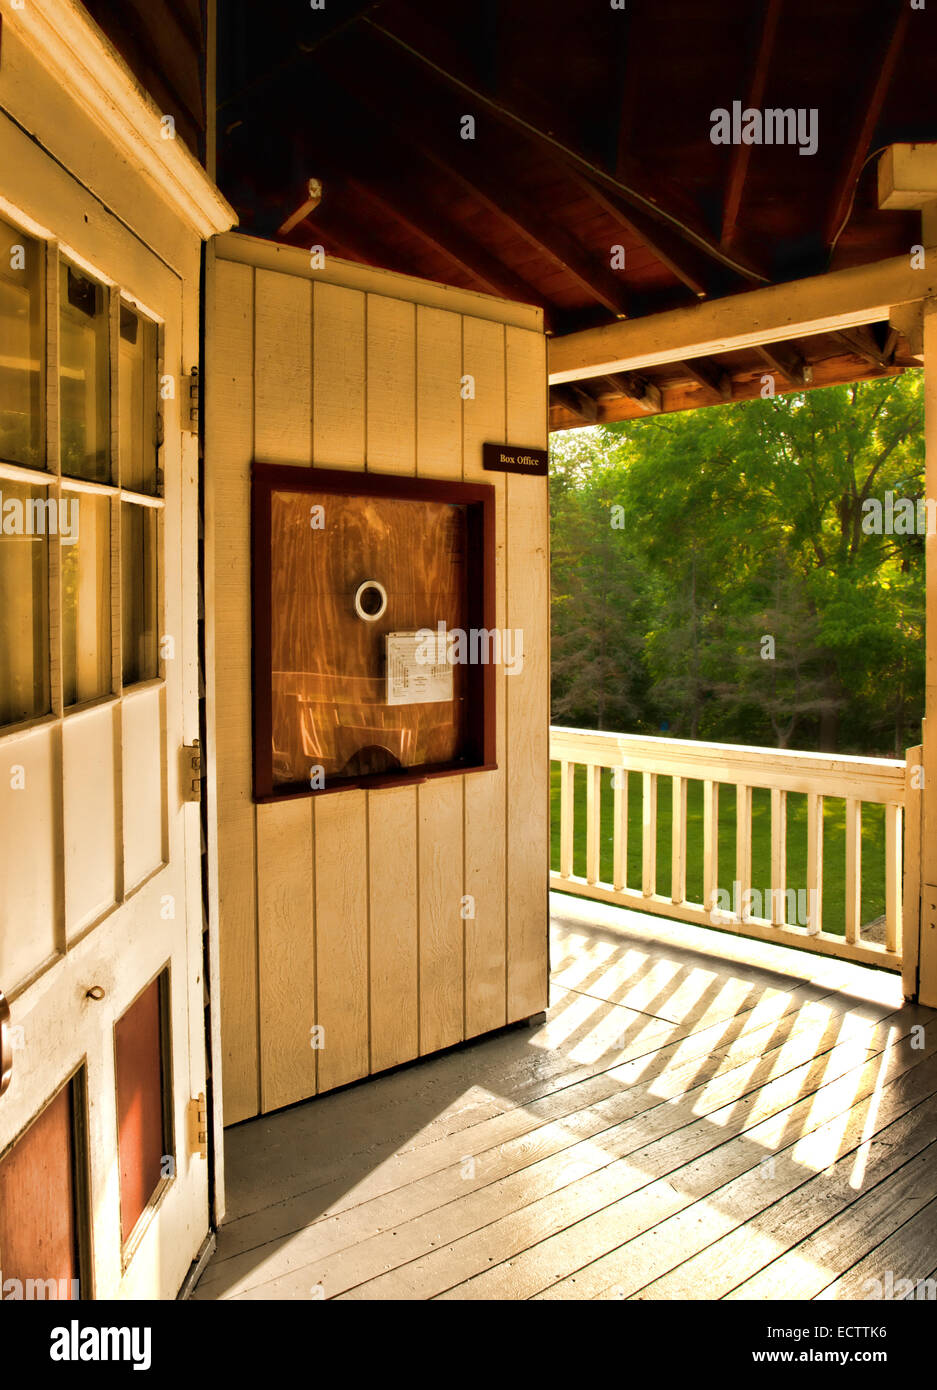 small rural  community theater box office - Stock Image